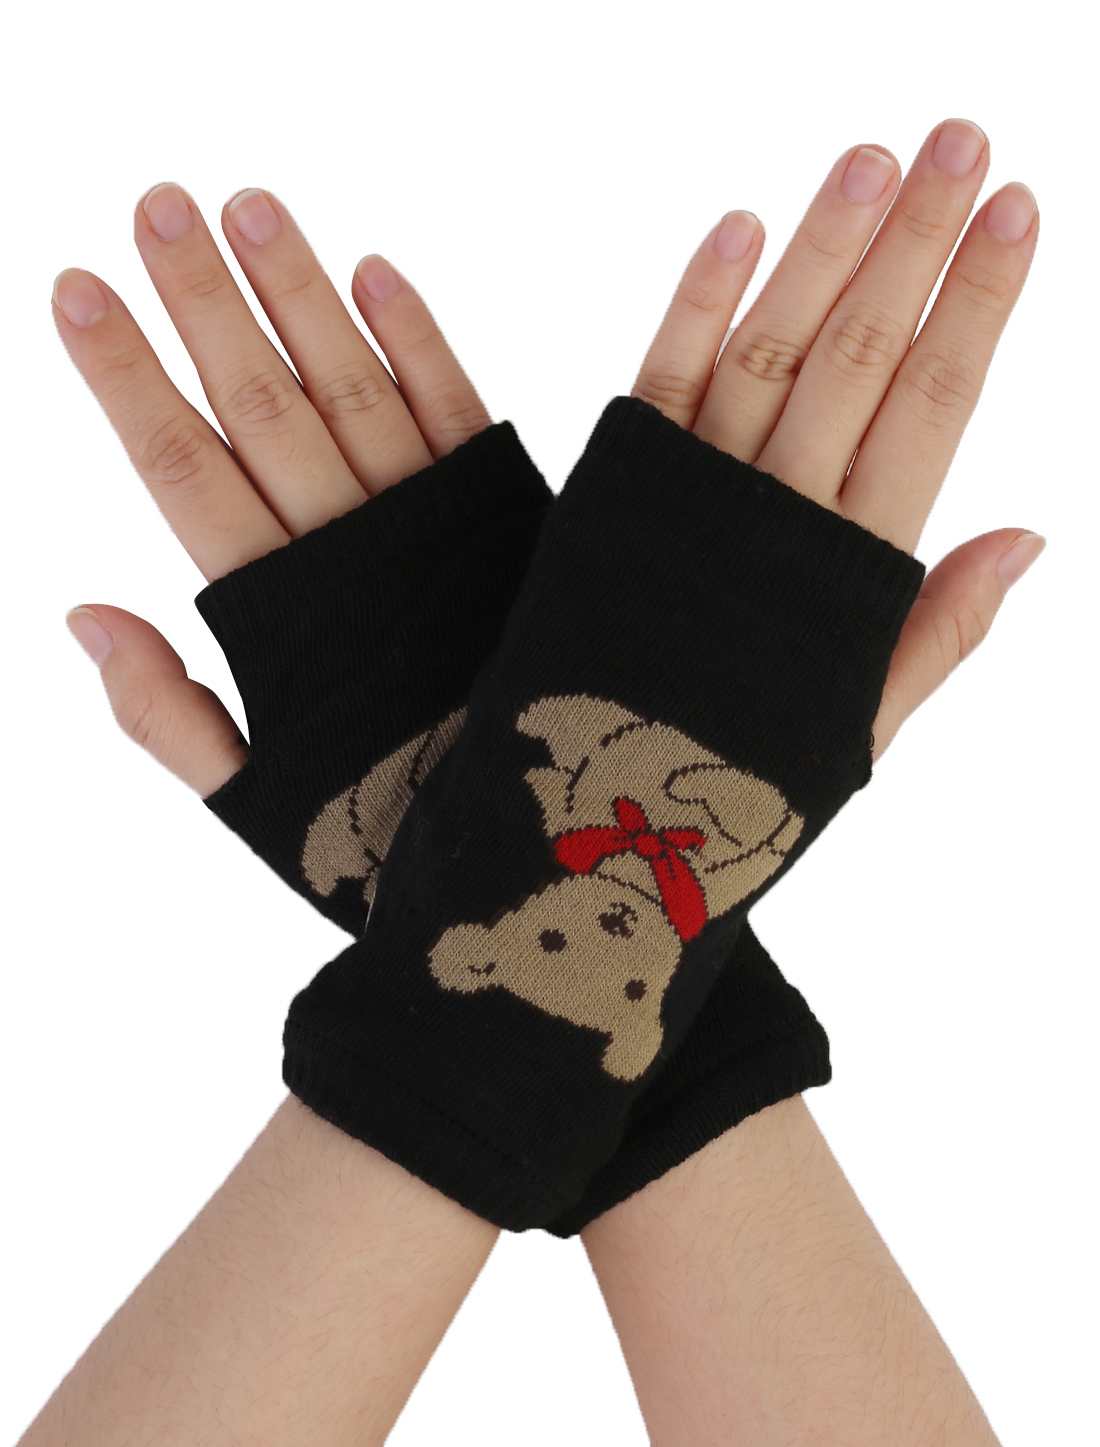 Women Beige Bear Pattern Fingerless Mitten Knit Elastic Gloves Pair Black